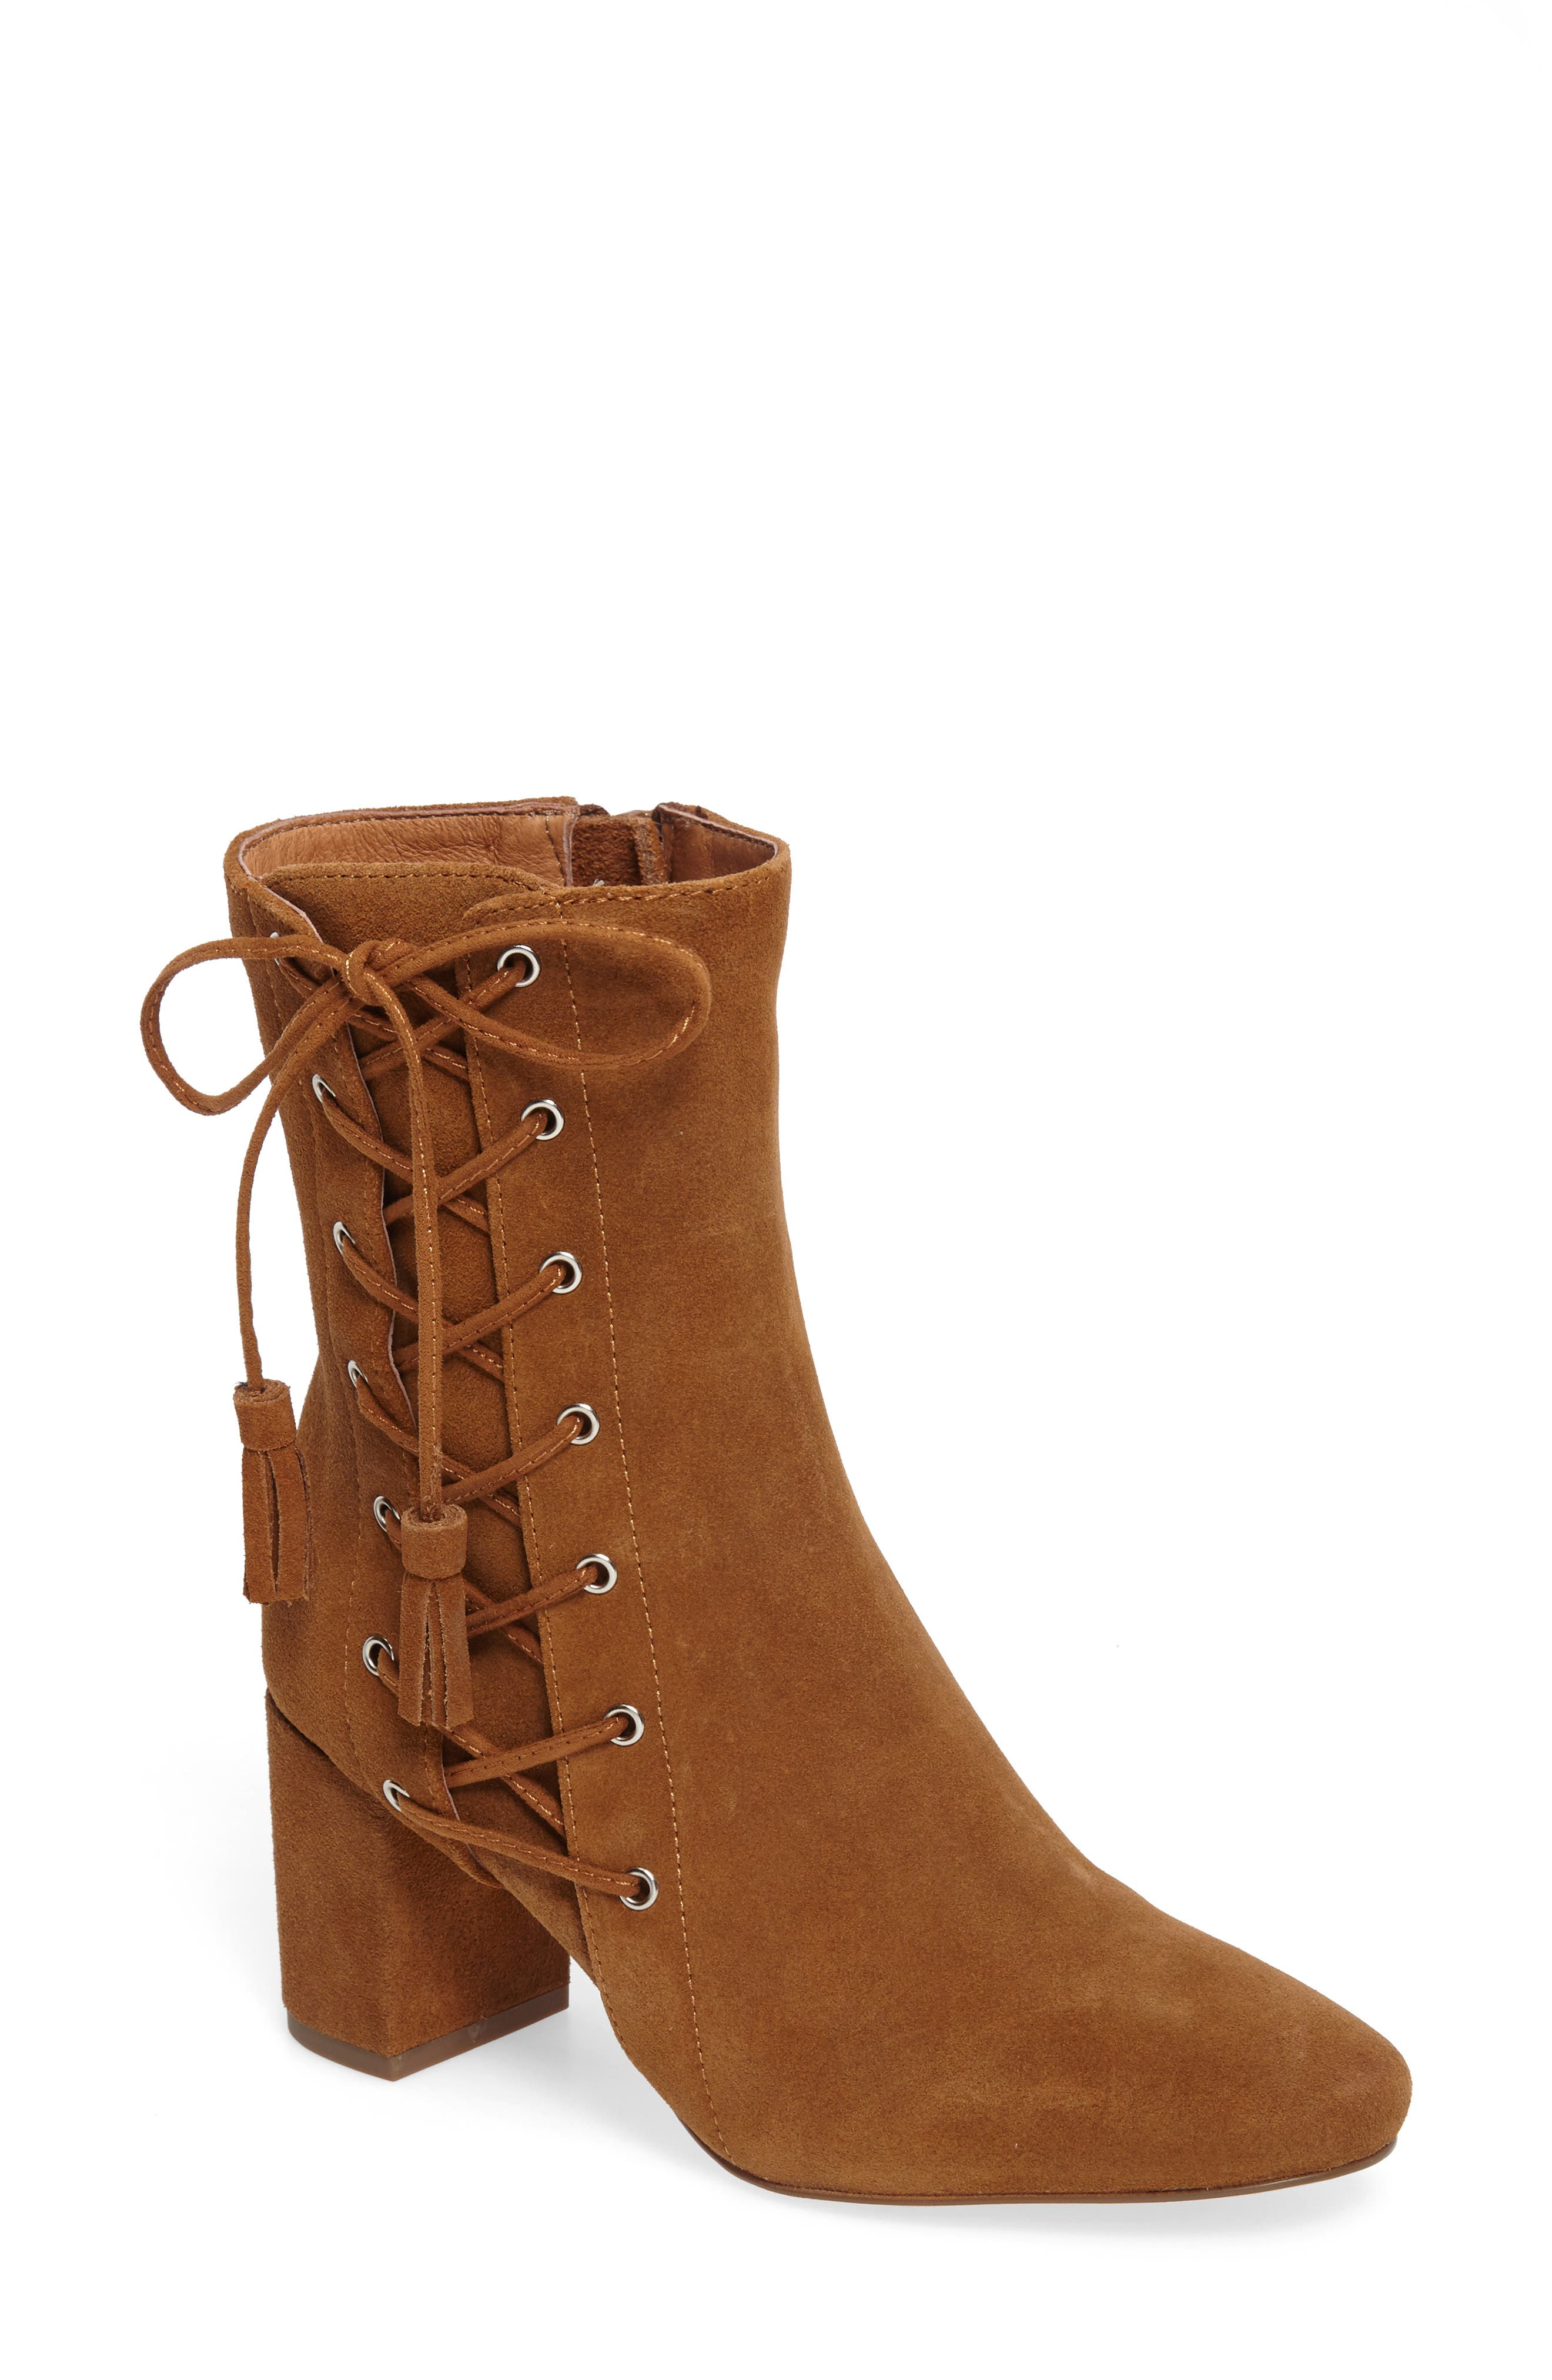 Main Image - Matisse Harp Lace-Up Bootie (Women)